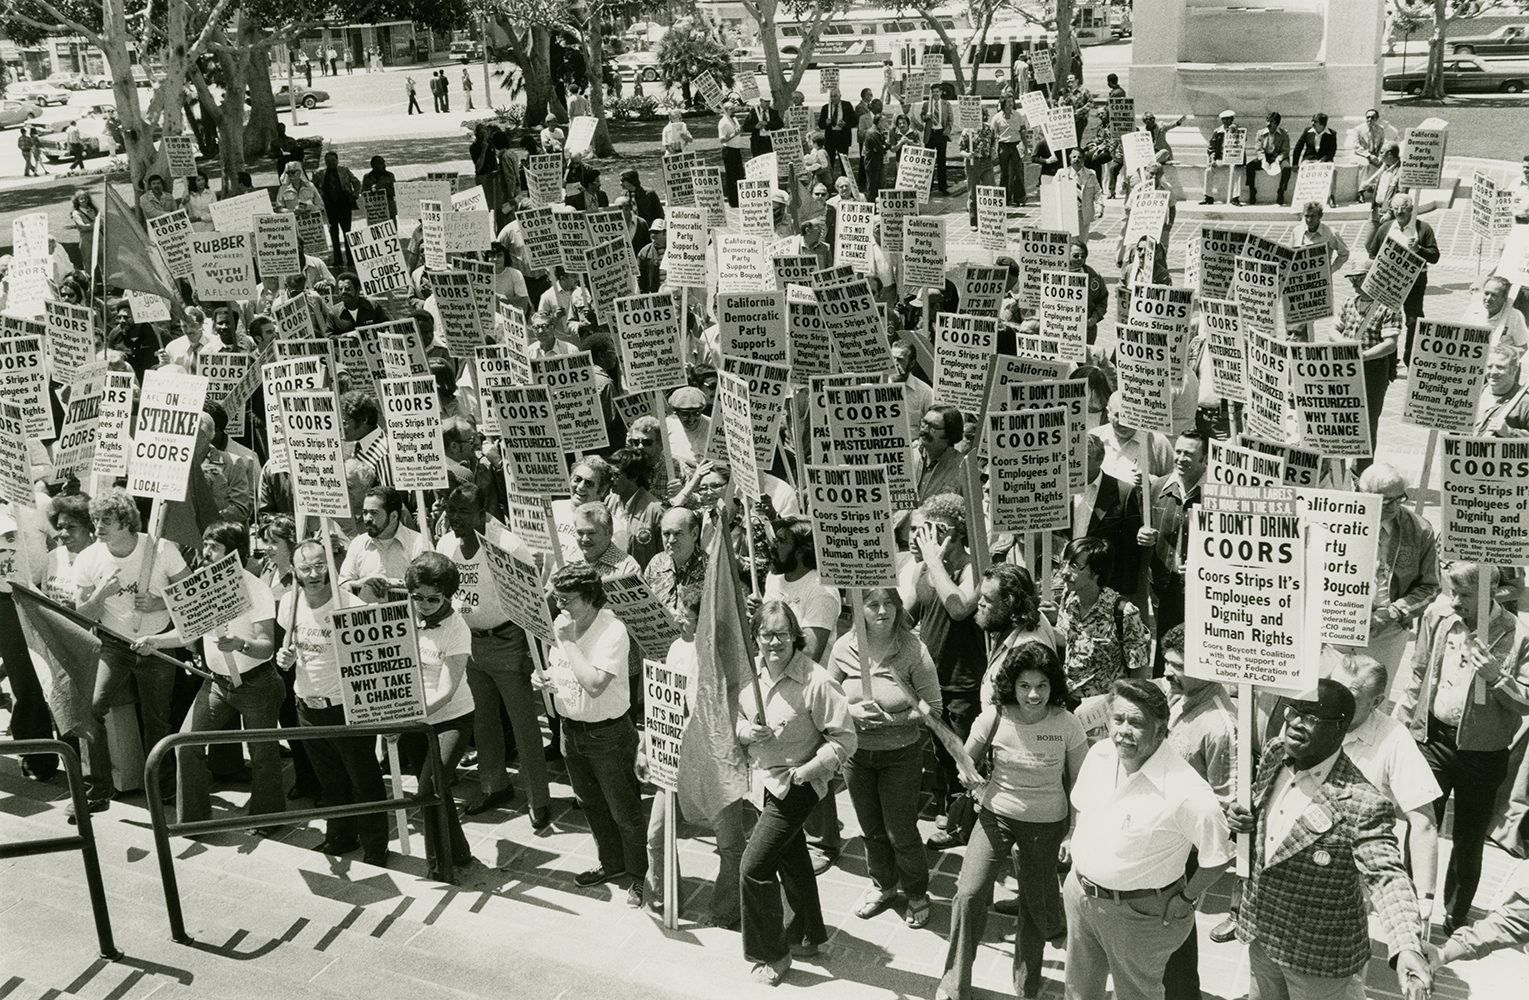 Coors protests